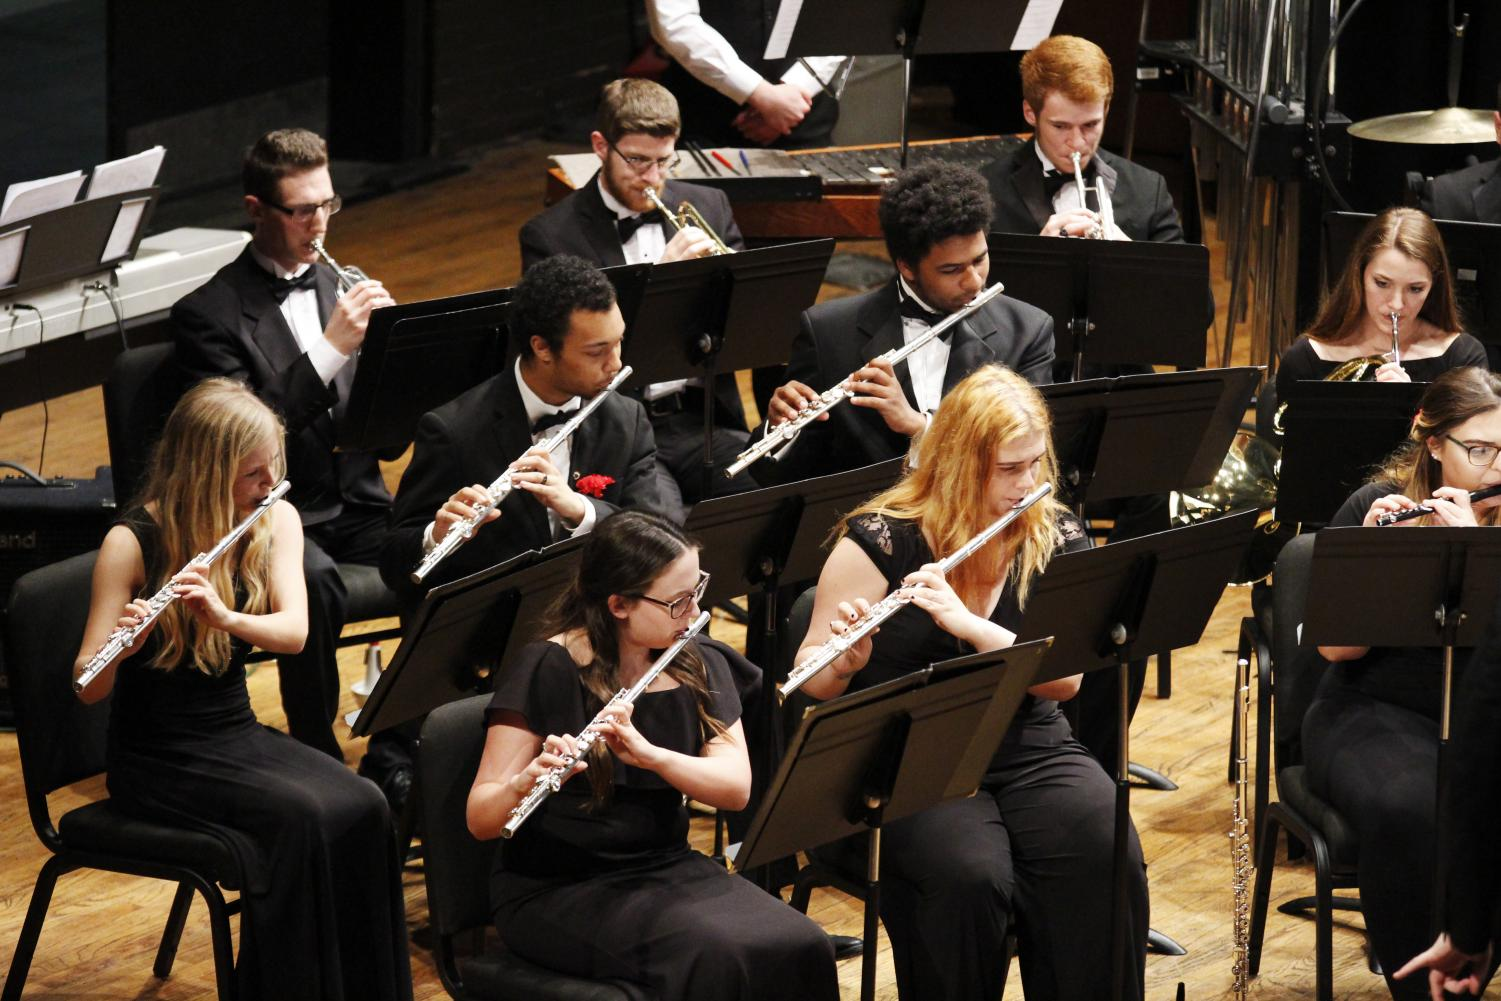 Students can express themselves musically through a number of organizations such as the university Wind Symphony.